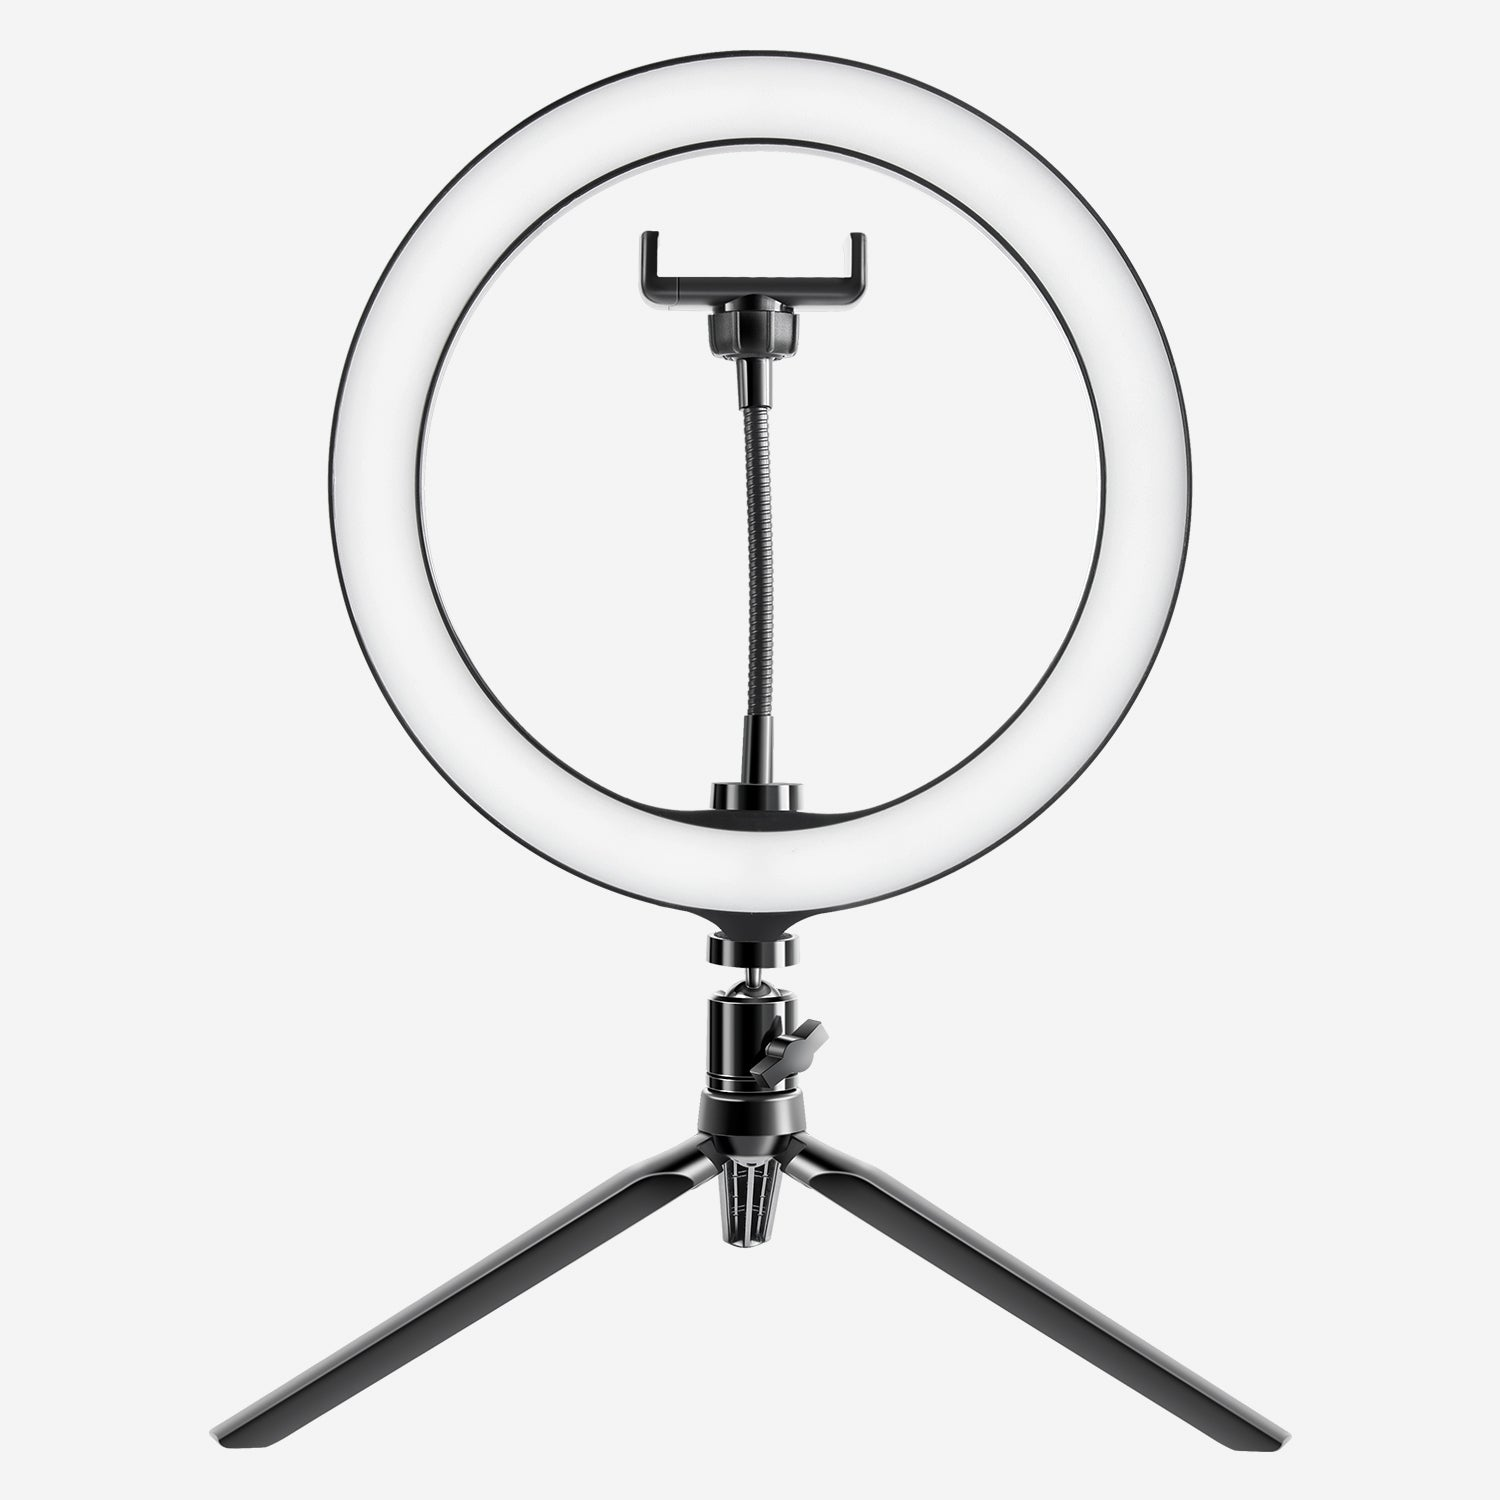 TOPGO ring ligth with stand for phone